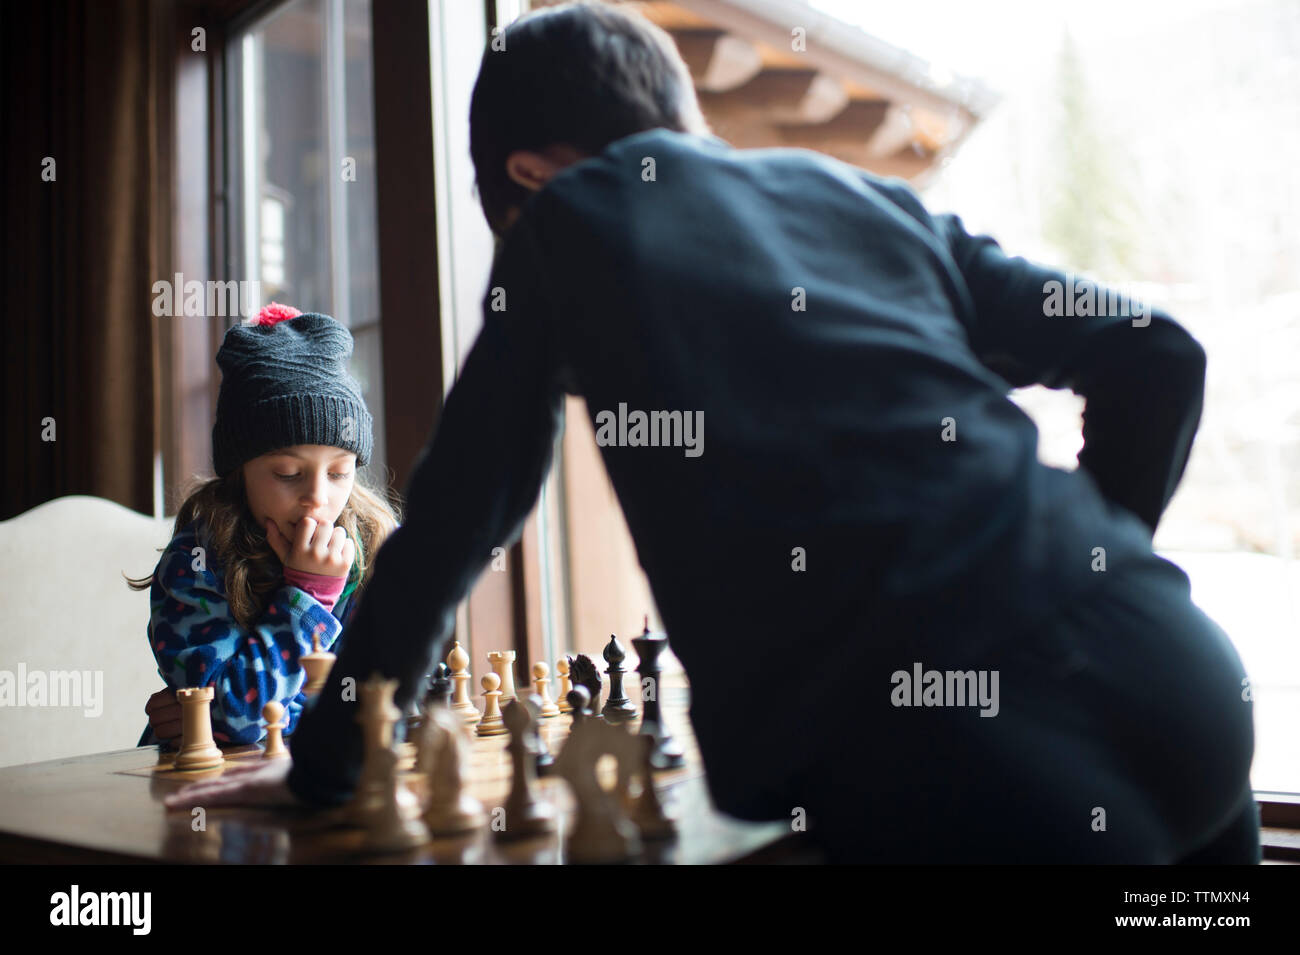 Siblings playing chess while standing by window at home - Stock Image